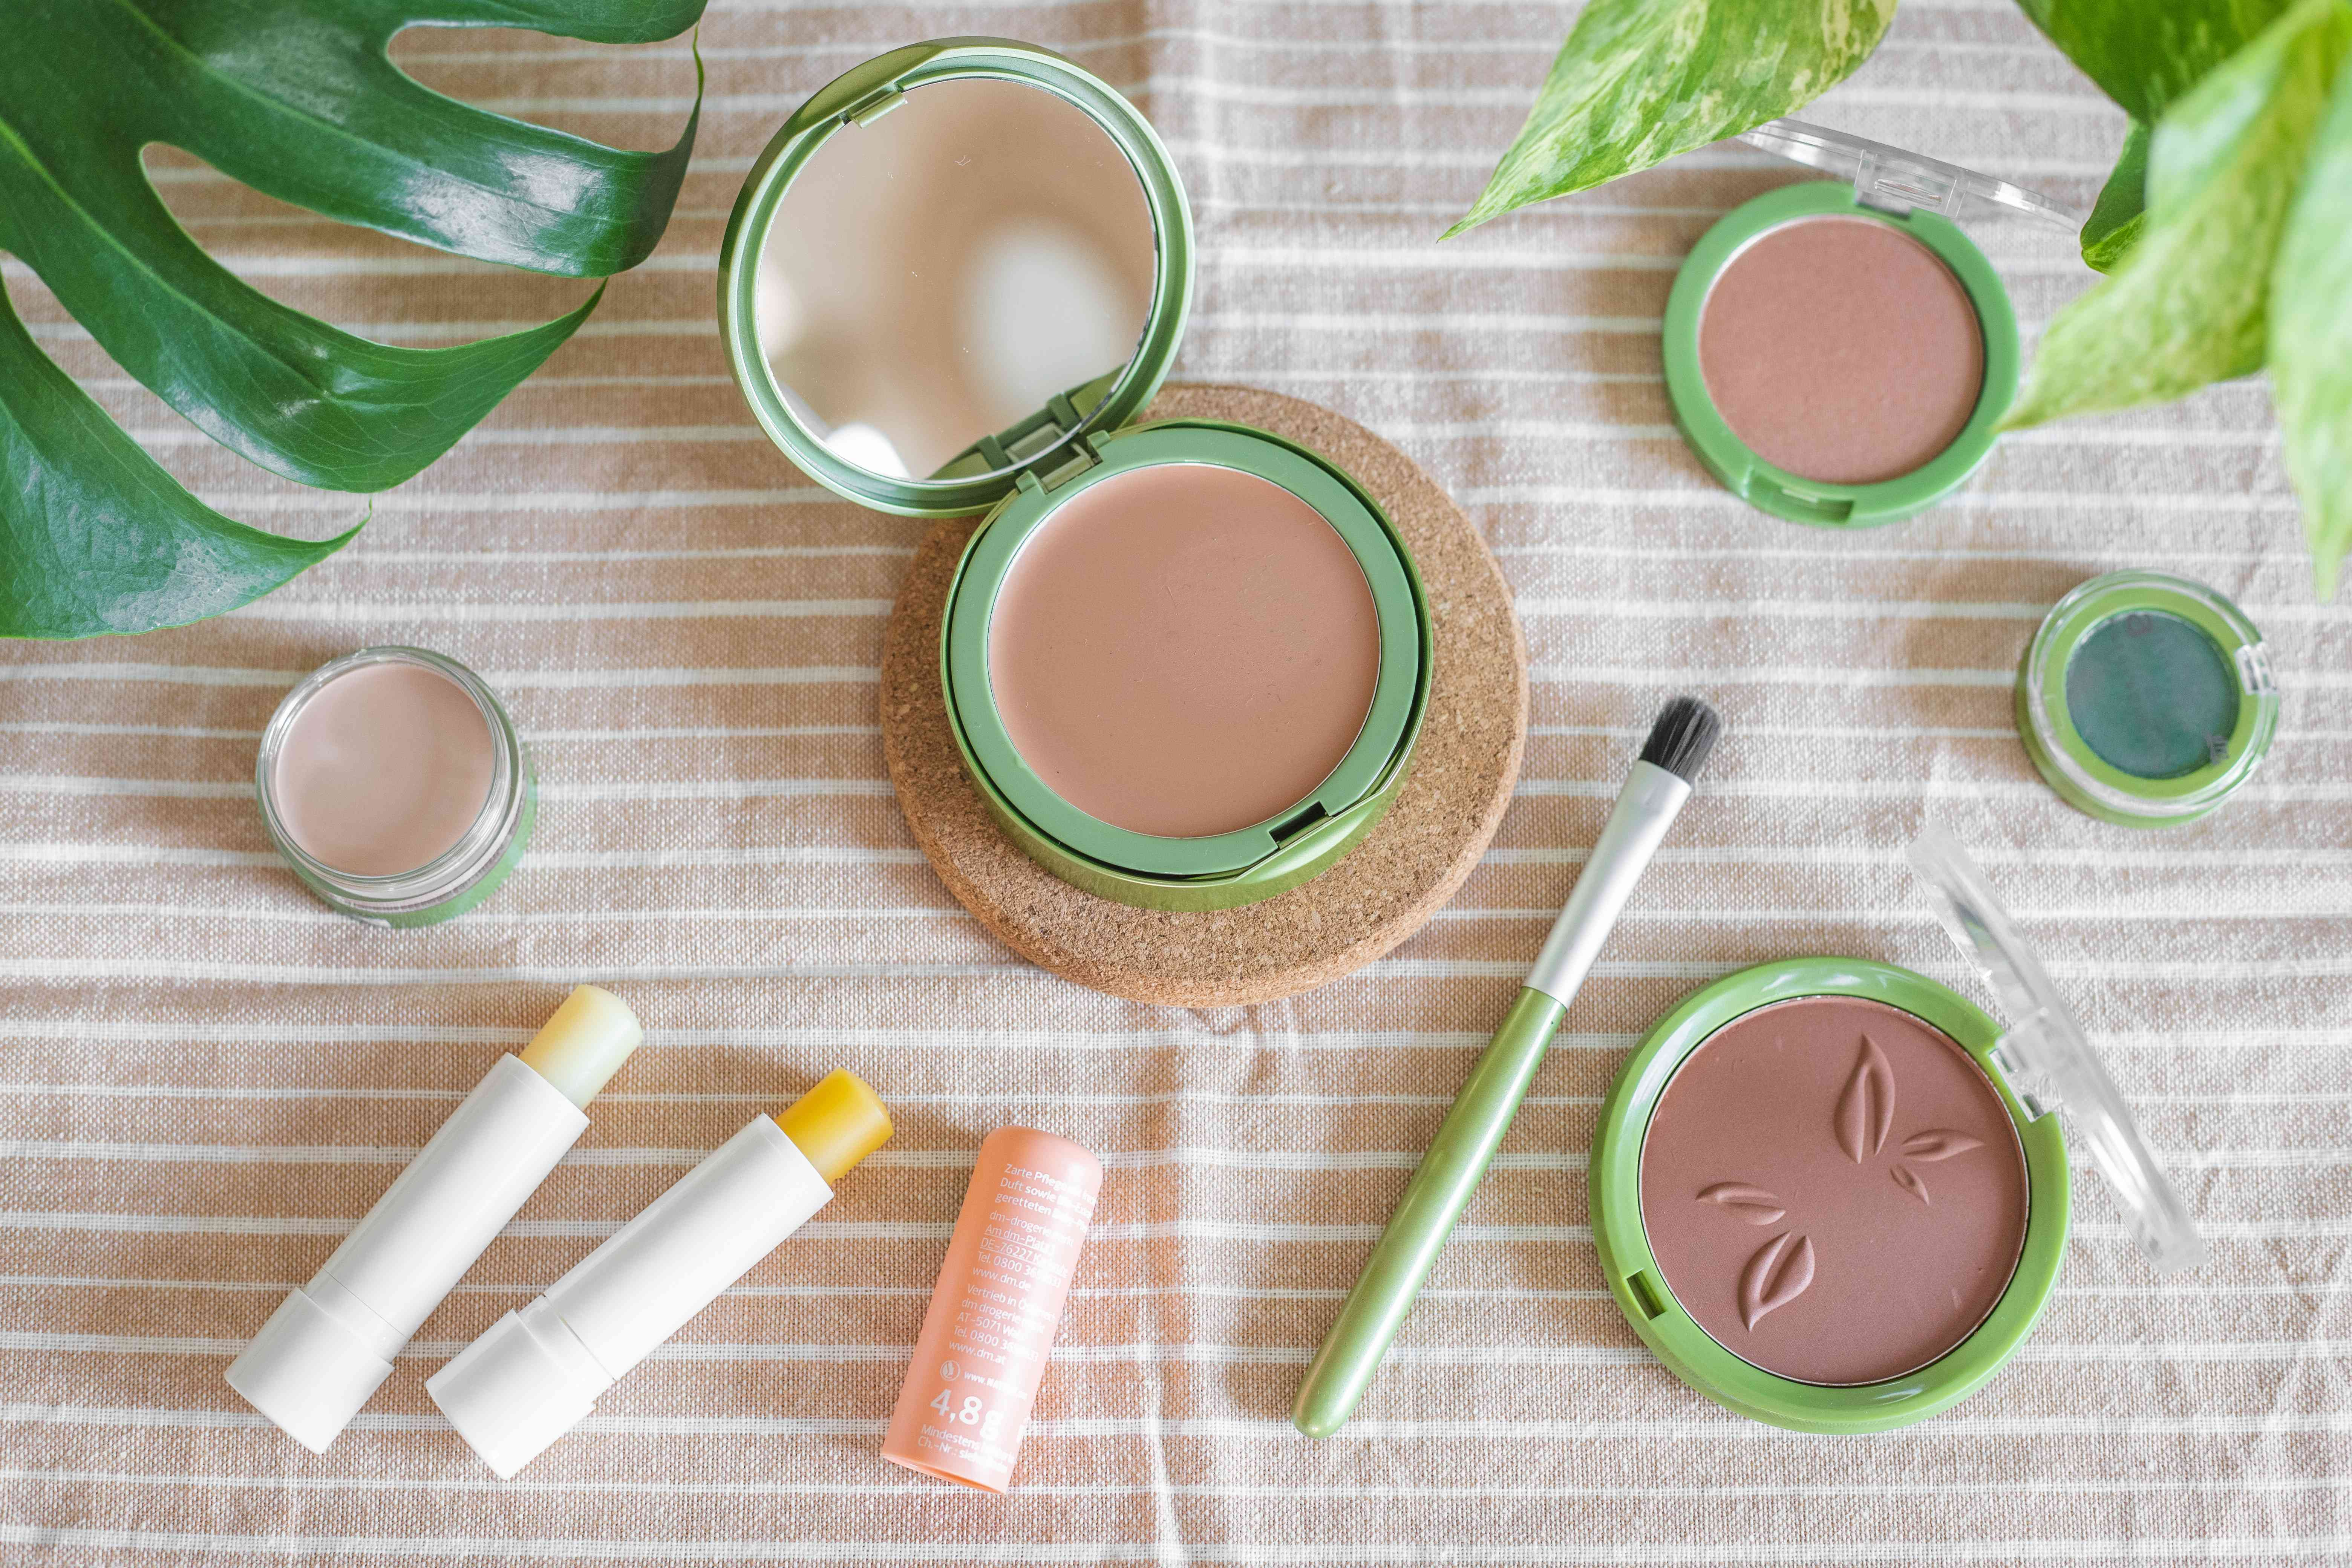 flat lay of rosy hues of waterless makeup cream blushes and lipstick